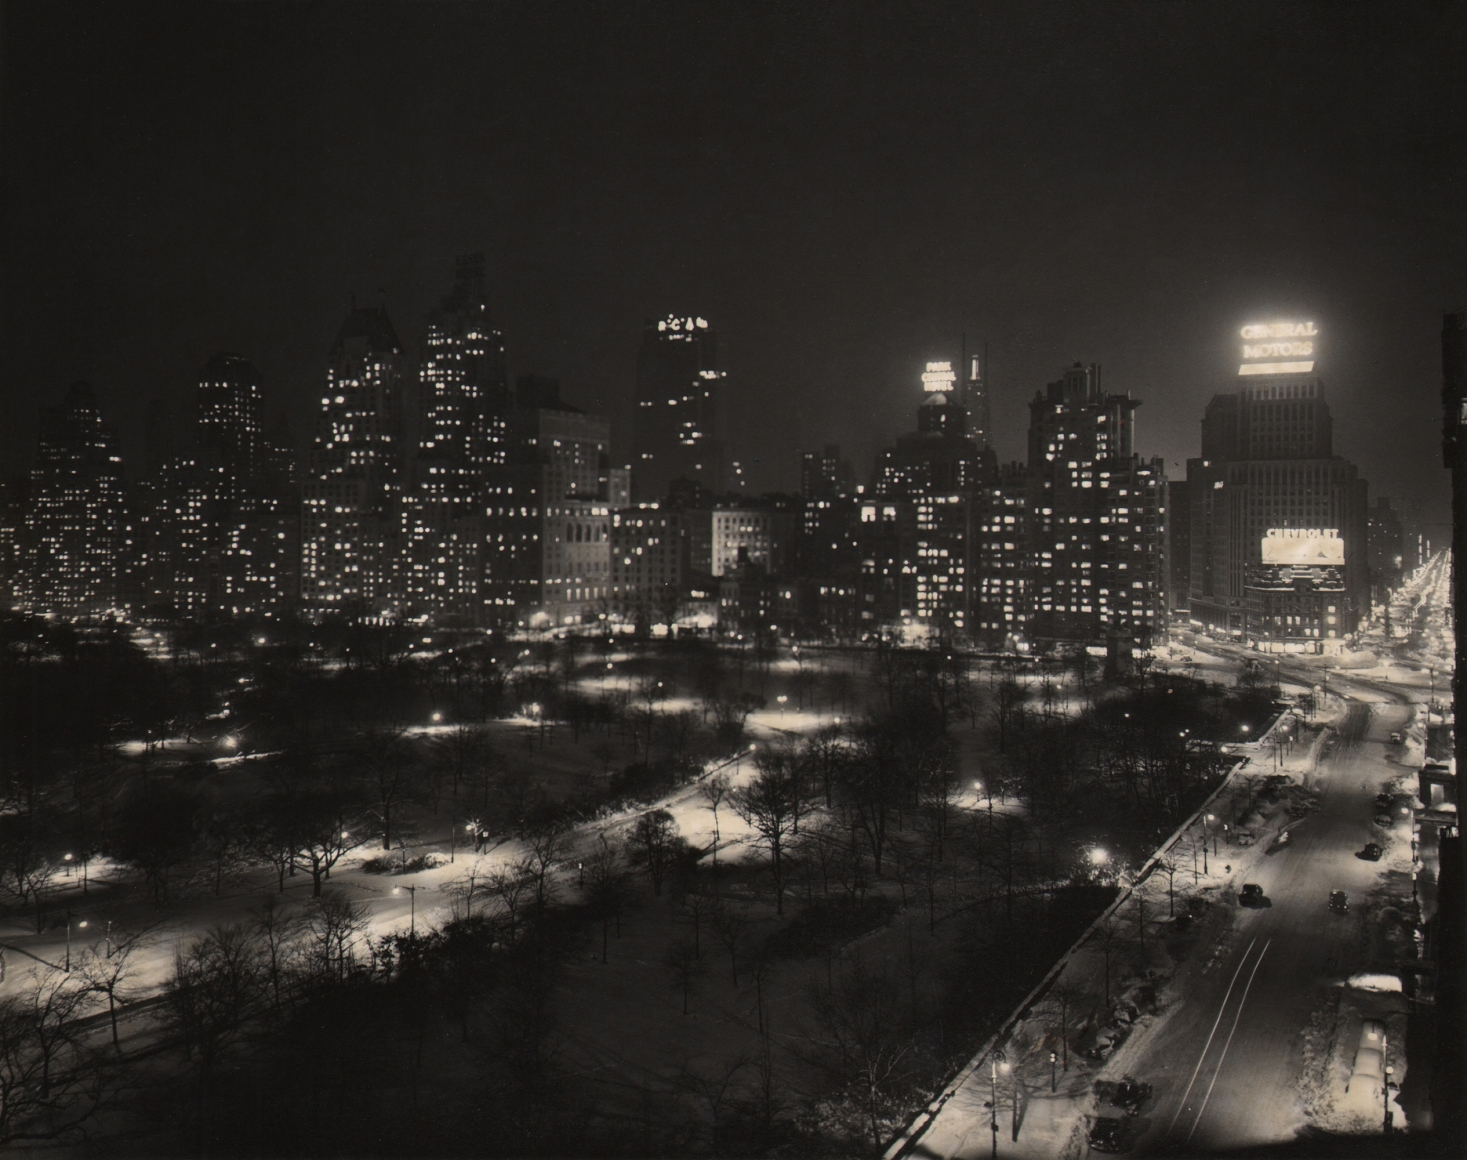 Paul J. Woolf, Central Park South & West, c. 1935. Night time cityscape with park on lower left, street running up the right of the frame, and buildings across the middle of the frame.